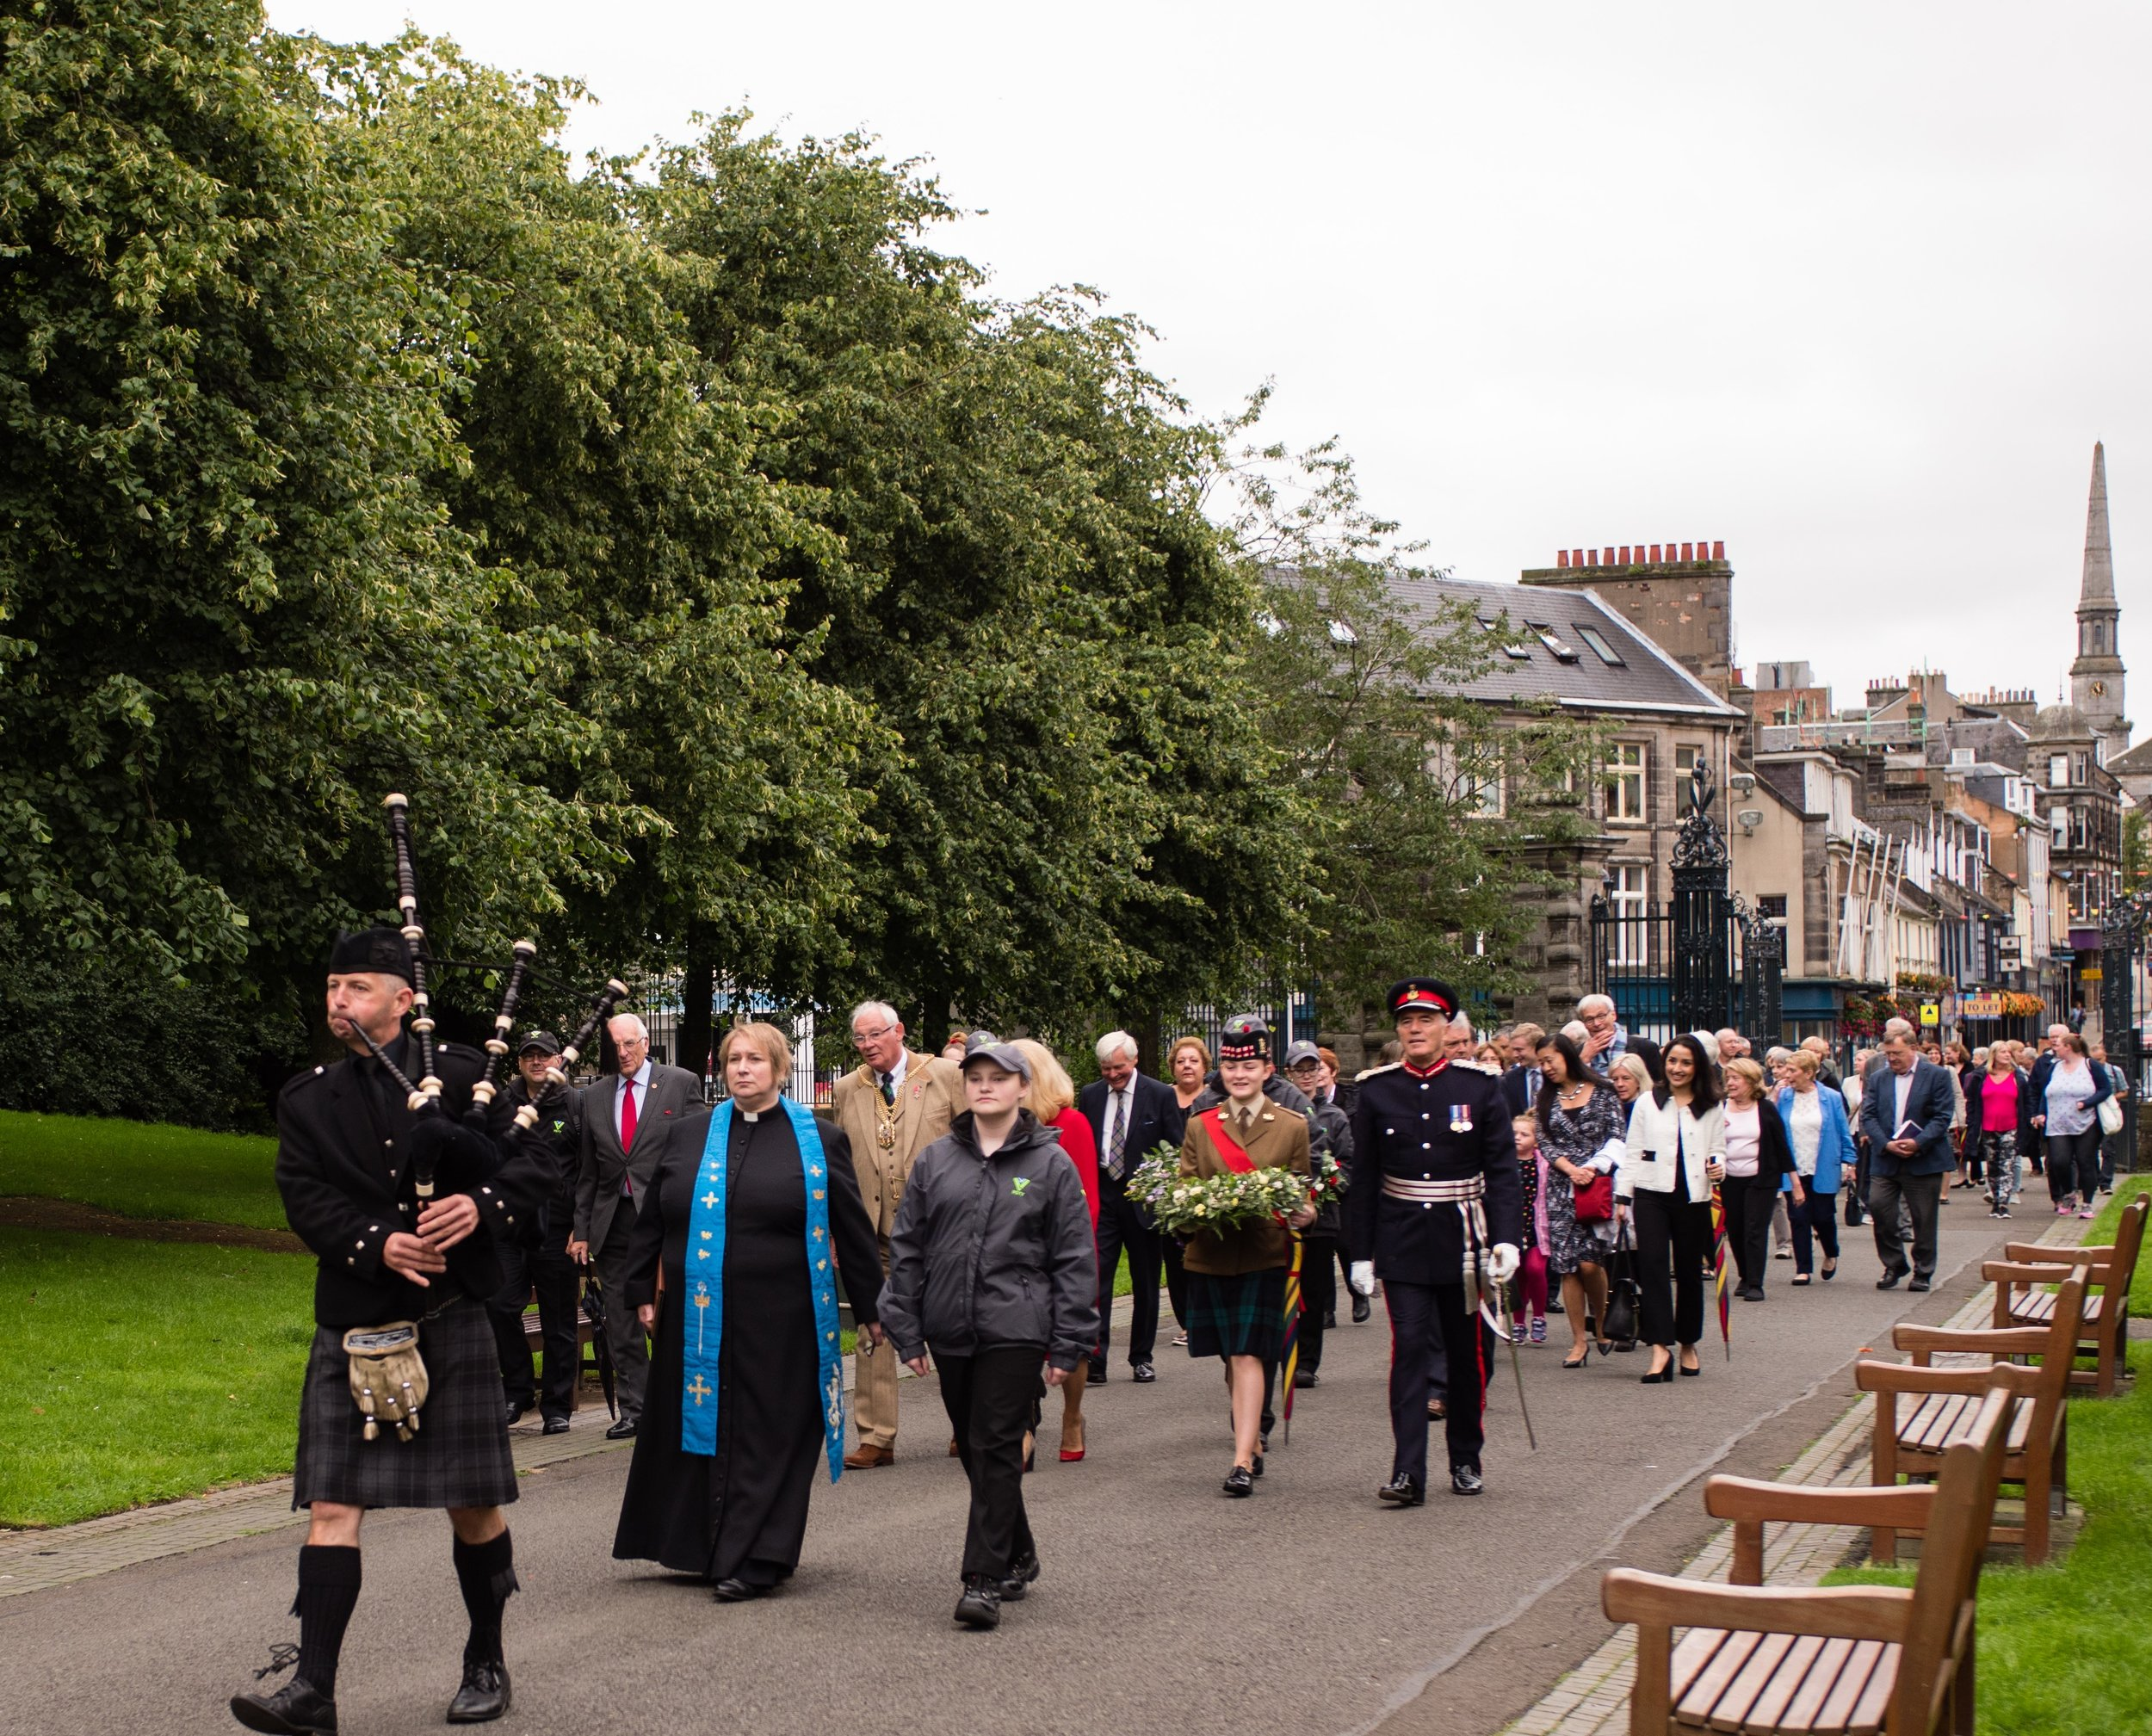 The piper leading the procession to Andrew Carnegie's statue in Pittencrieff Park.